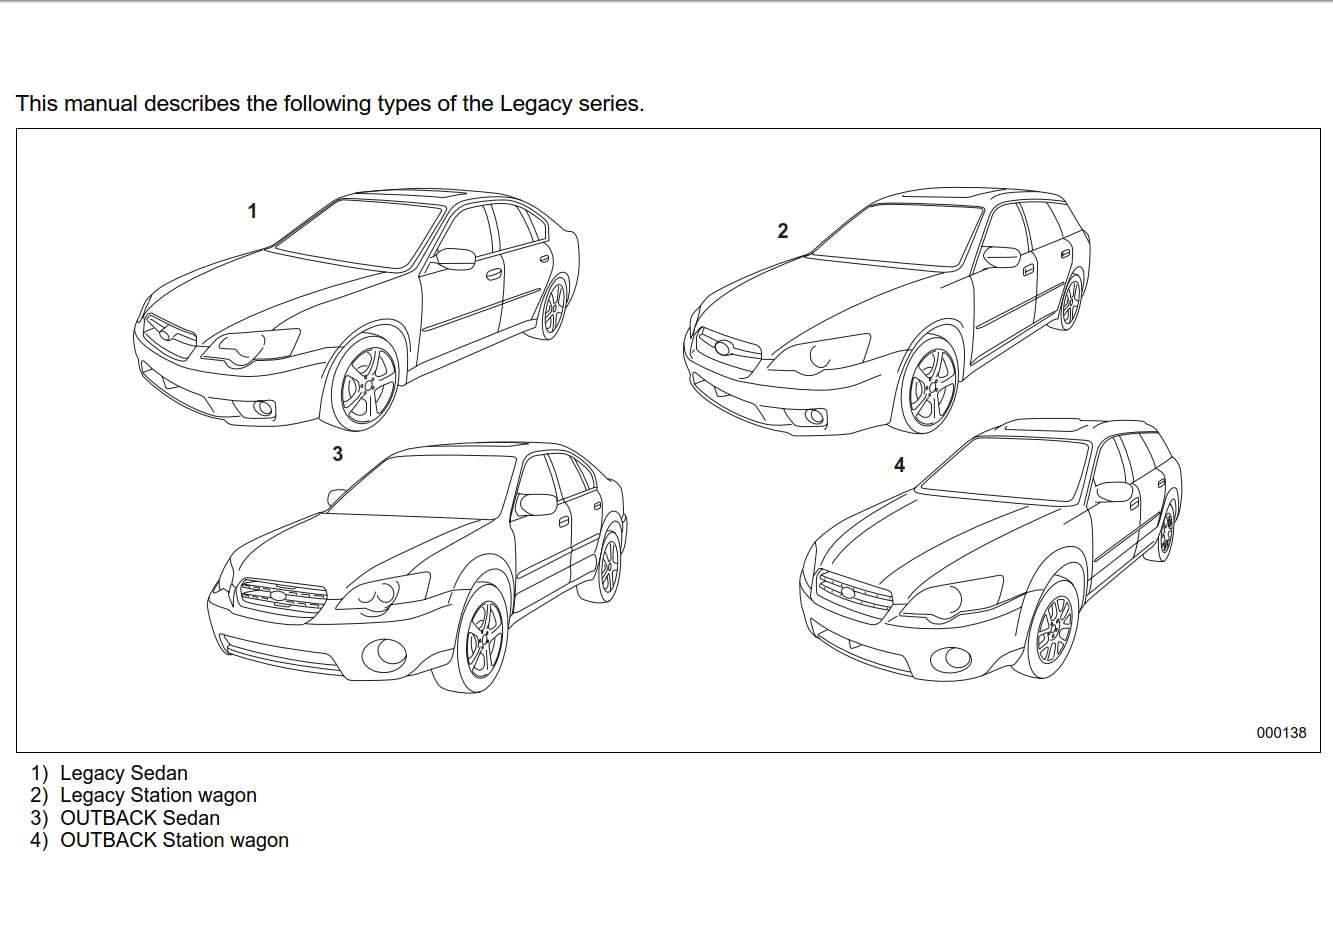 Subaru Legacy 2006 Owner's Manual